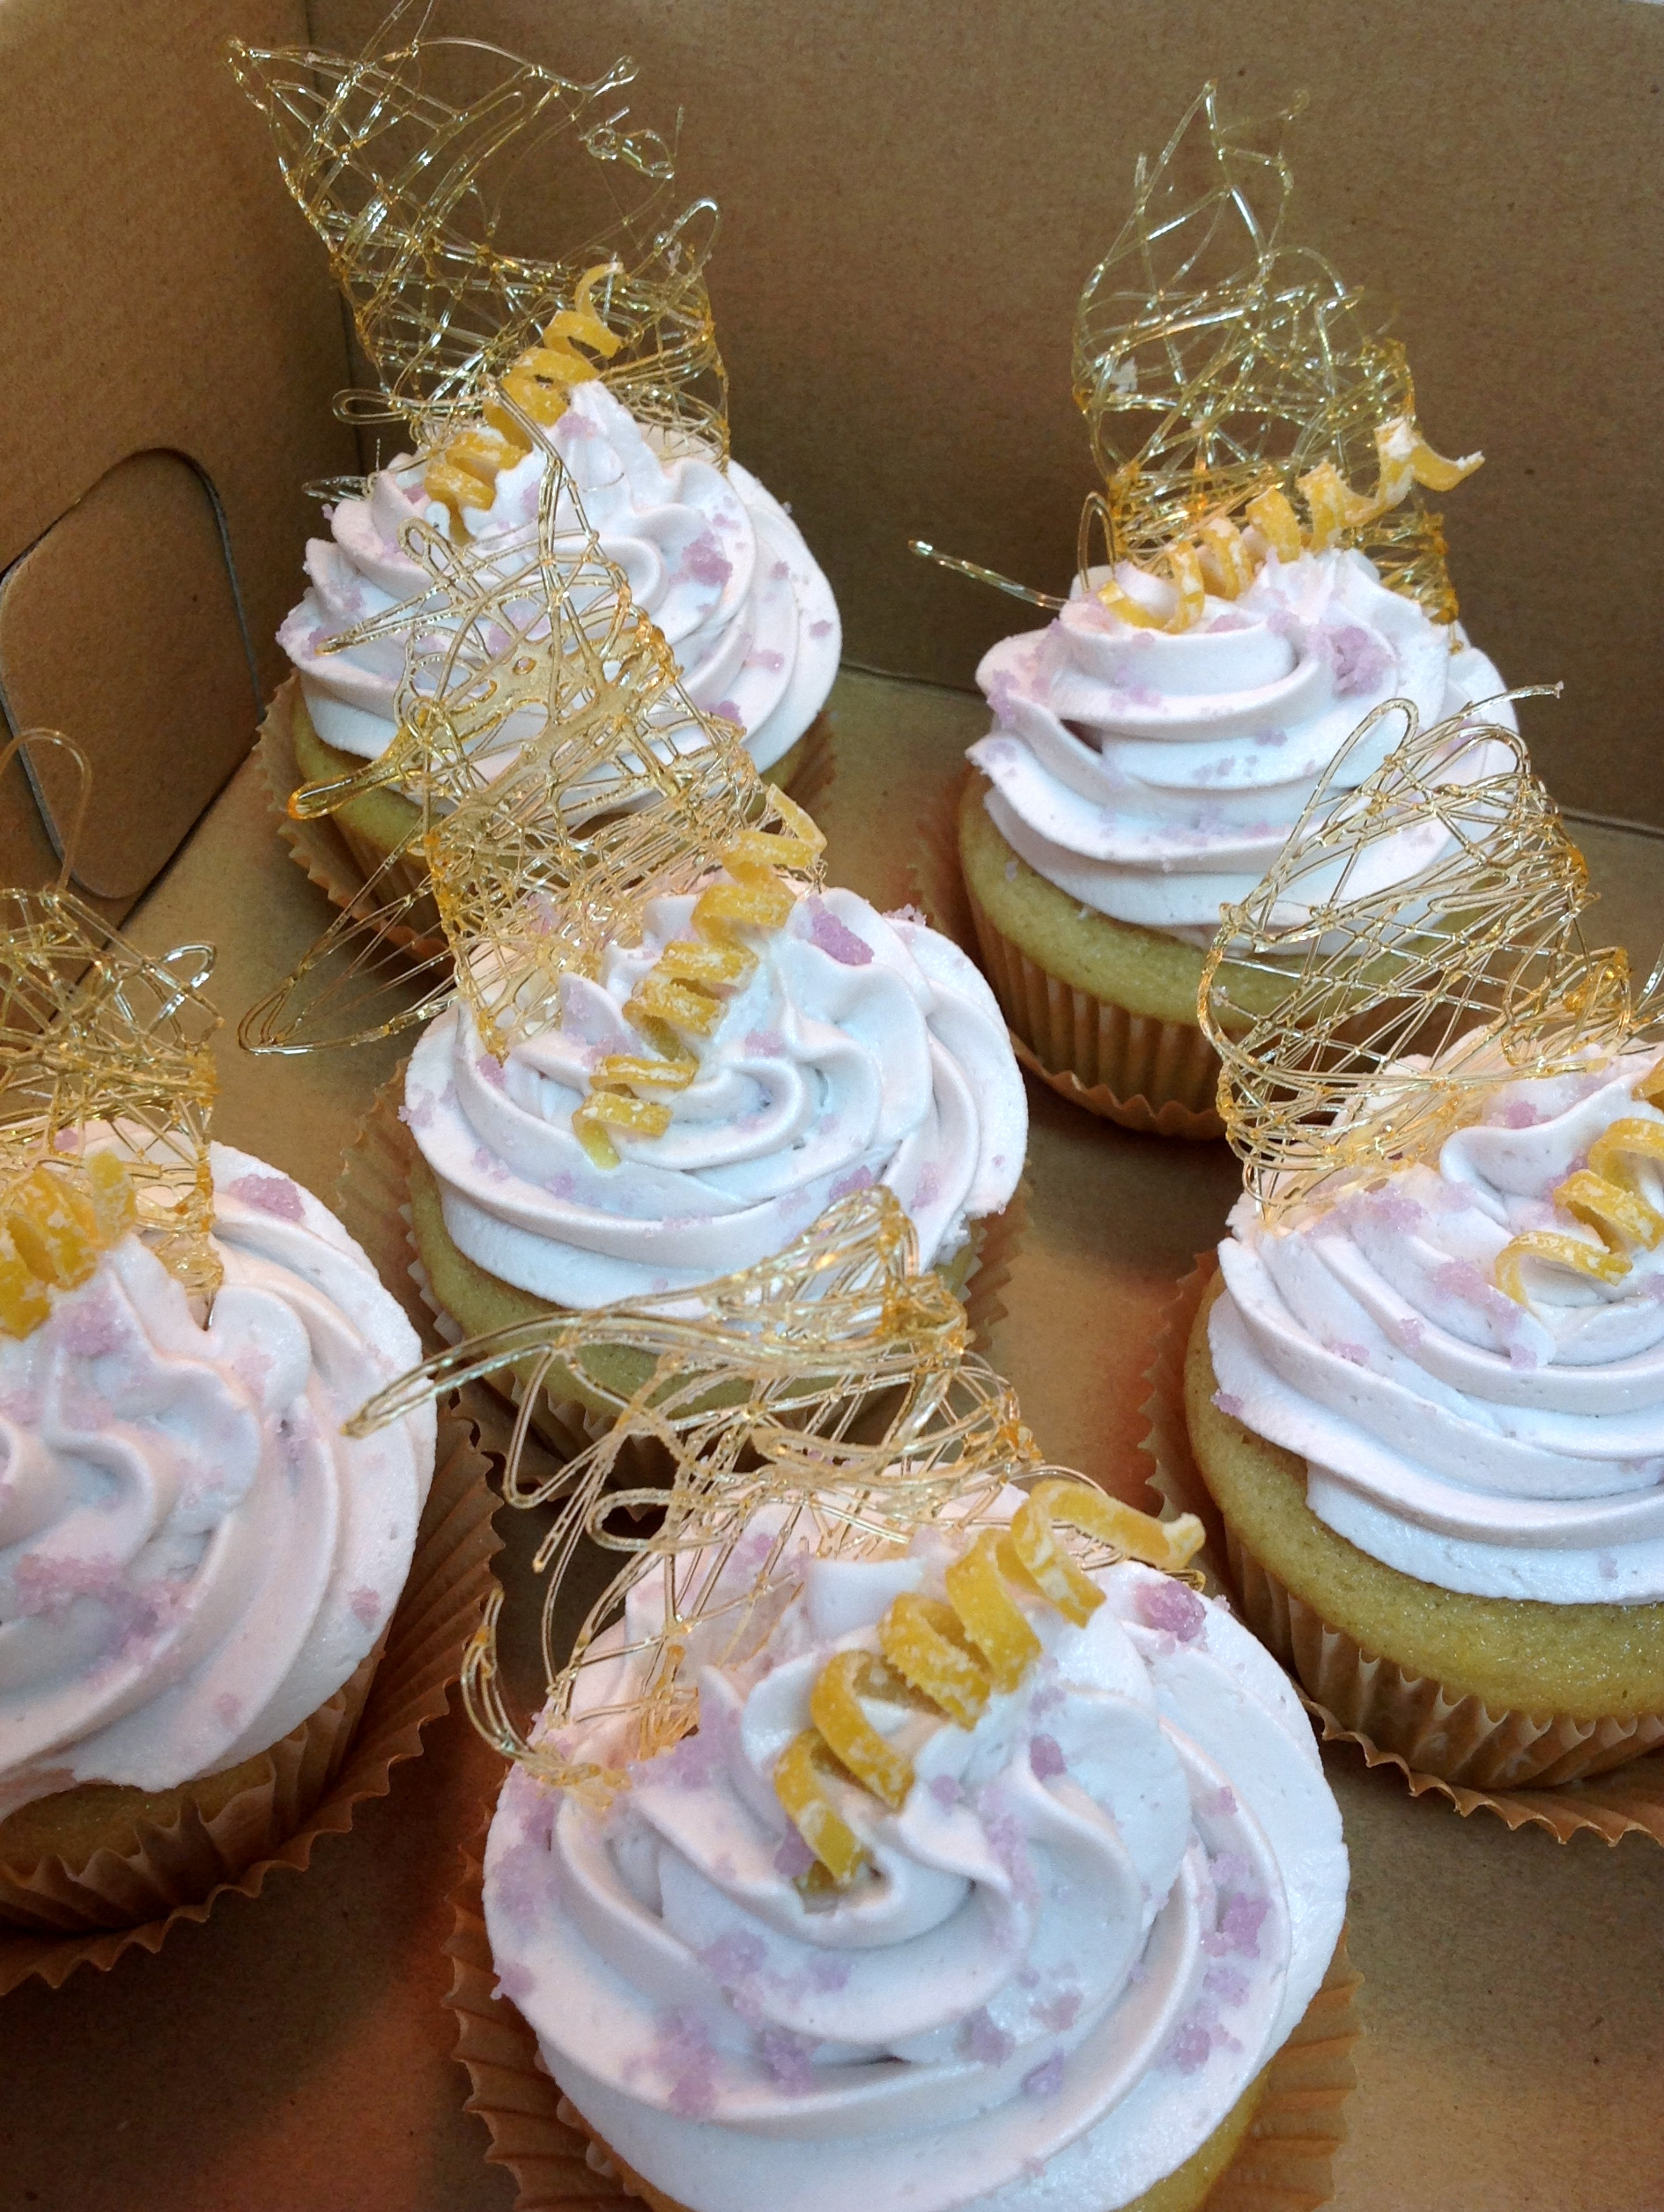 Lemon Lavender Cupcake with Lavender Sugar Crystals by Jara Fonseca, 1st Place & BEST OF SHOW, 2015 SoCal VegFest Vegan Cupcake Competition (Costa Mesa, CA, USA). Photo Credit: Jara Fonseca.